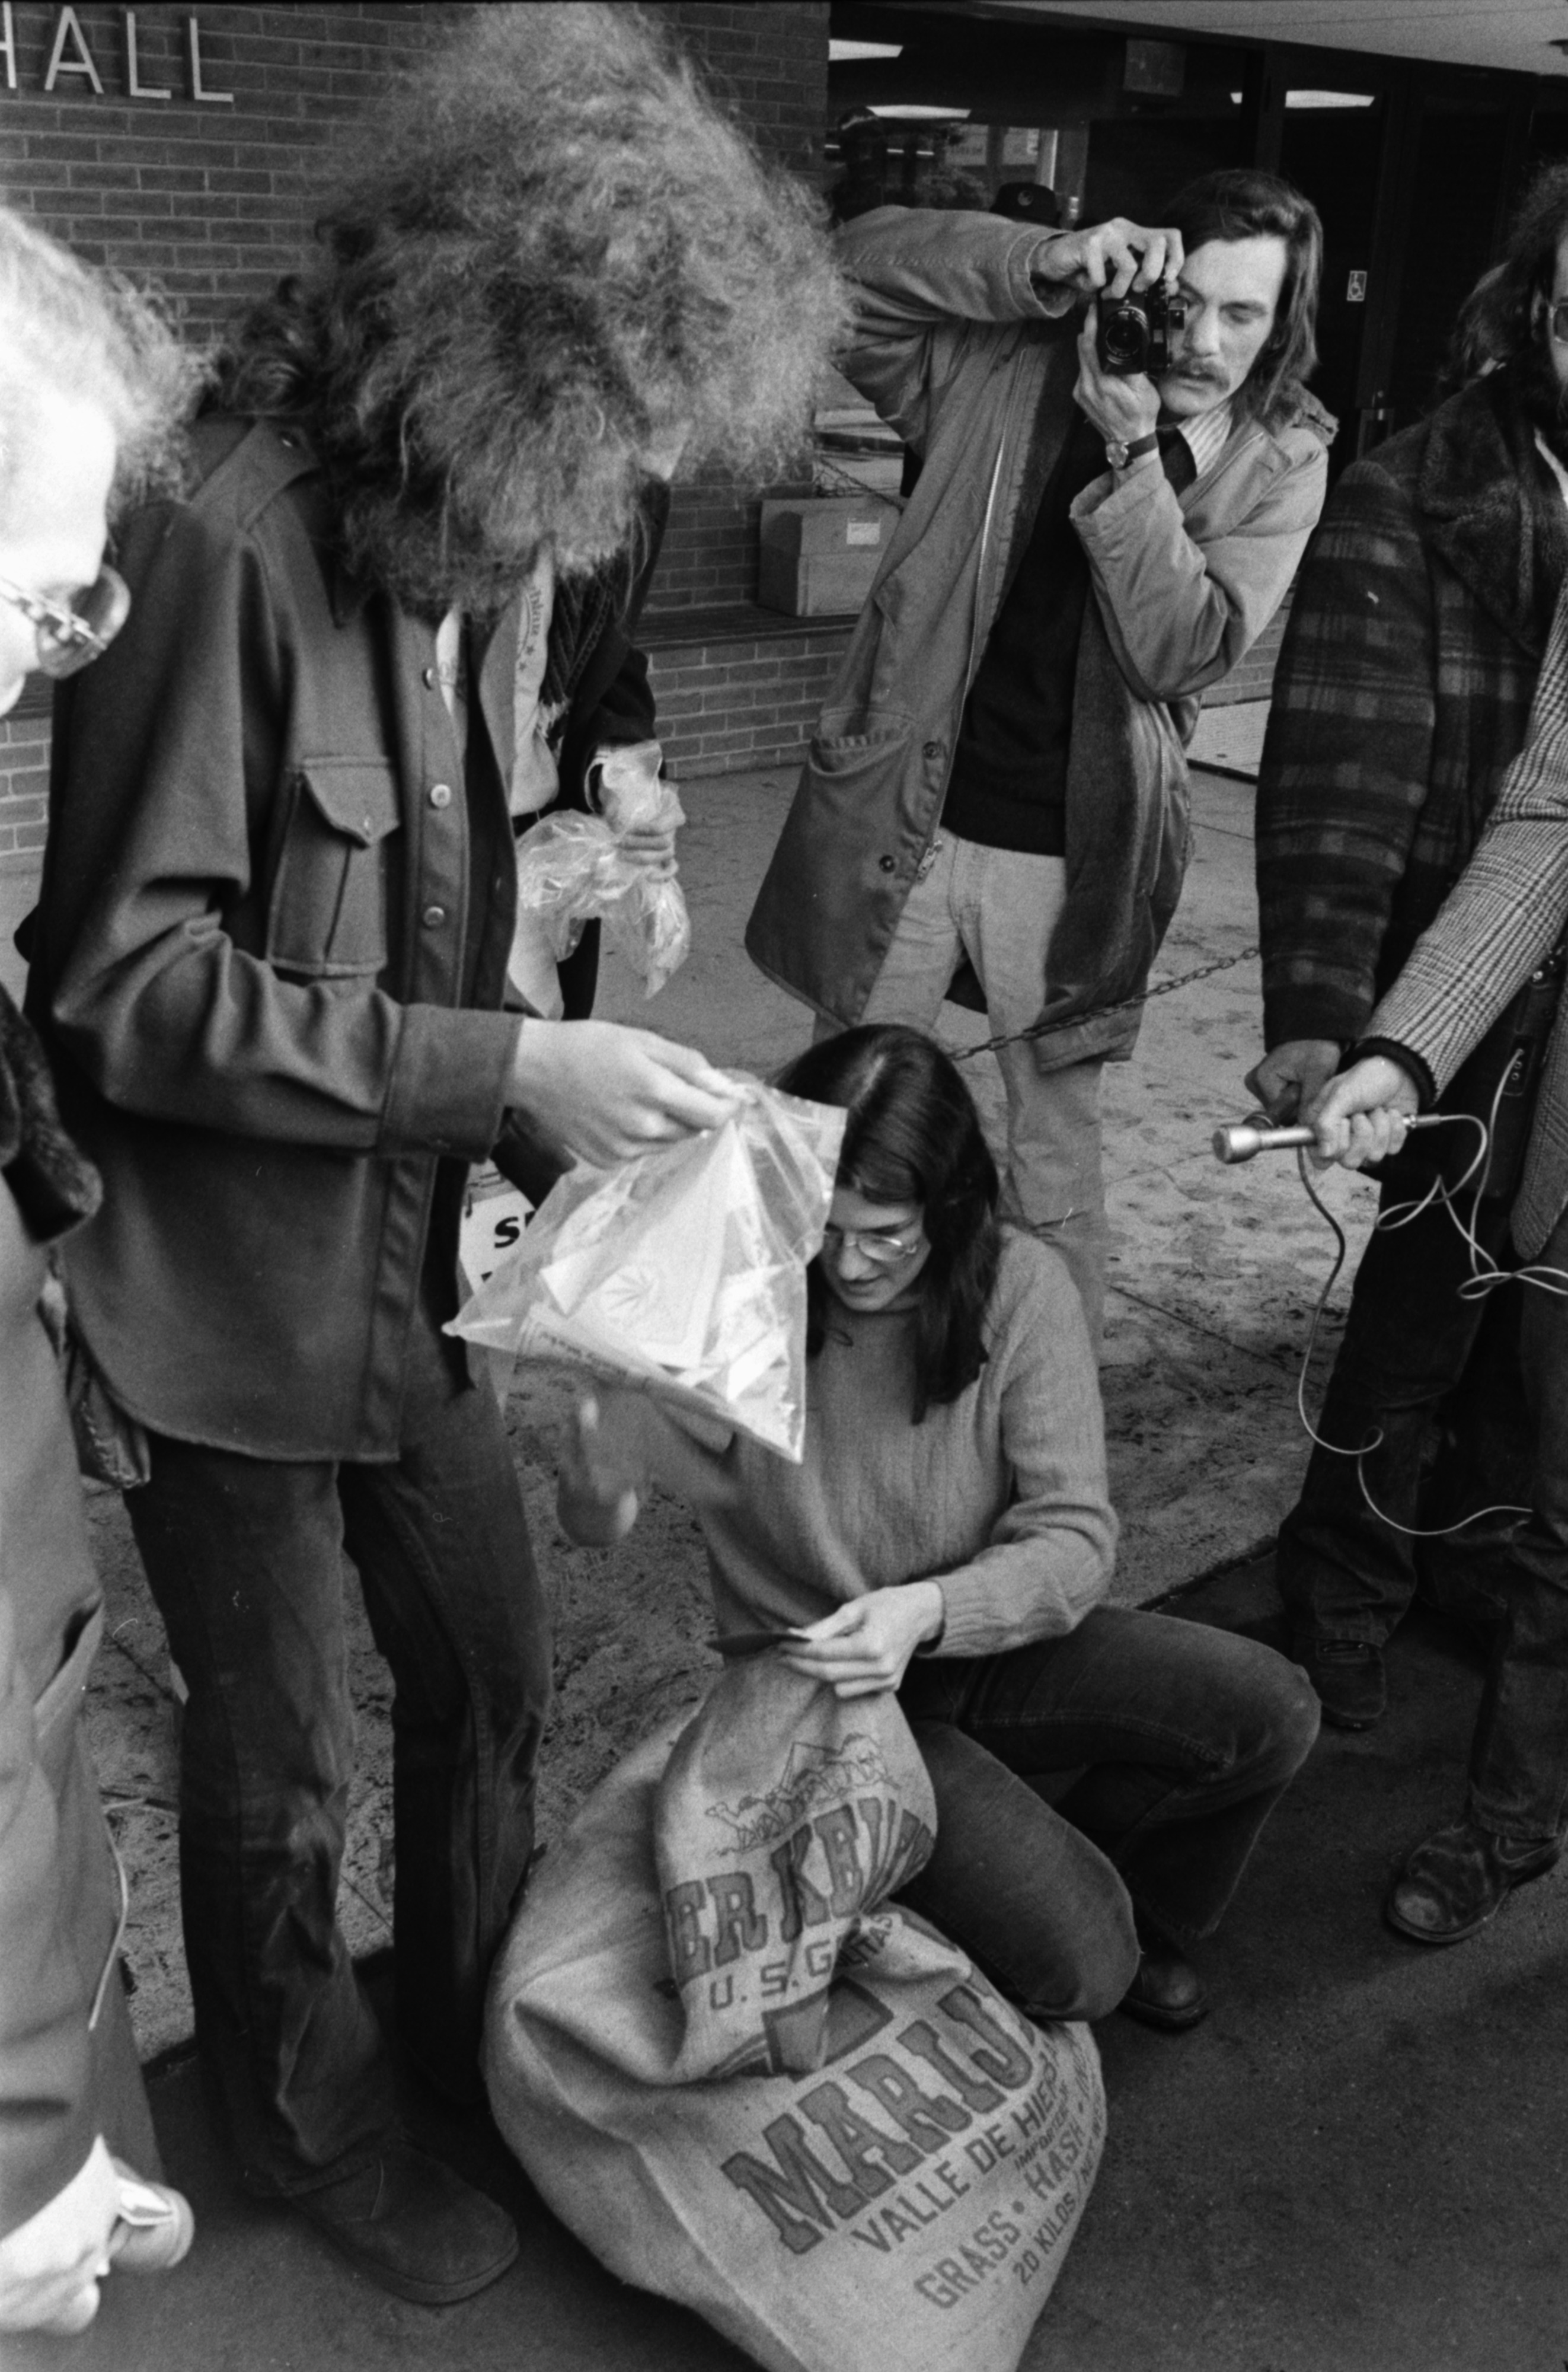 County Commissioner Catherine McClary Reaches into Sack at Drawing for Free Pot Giveaway, Ann Arbor City Hall, January 1975 image